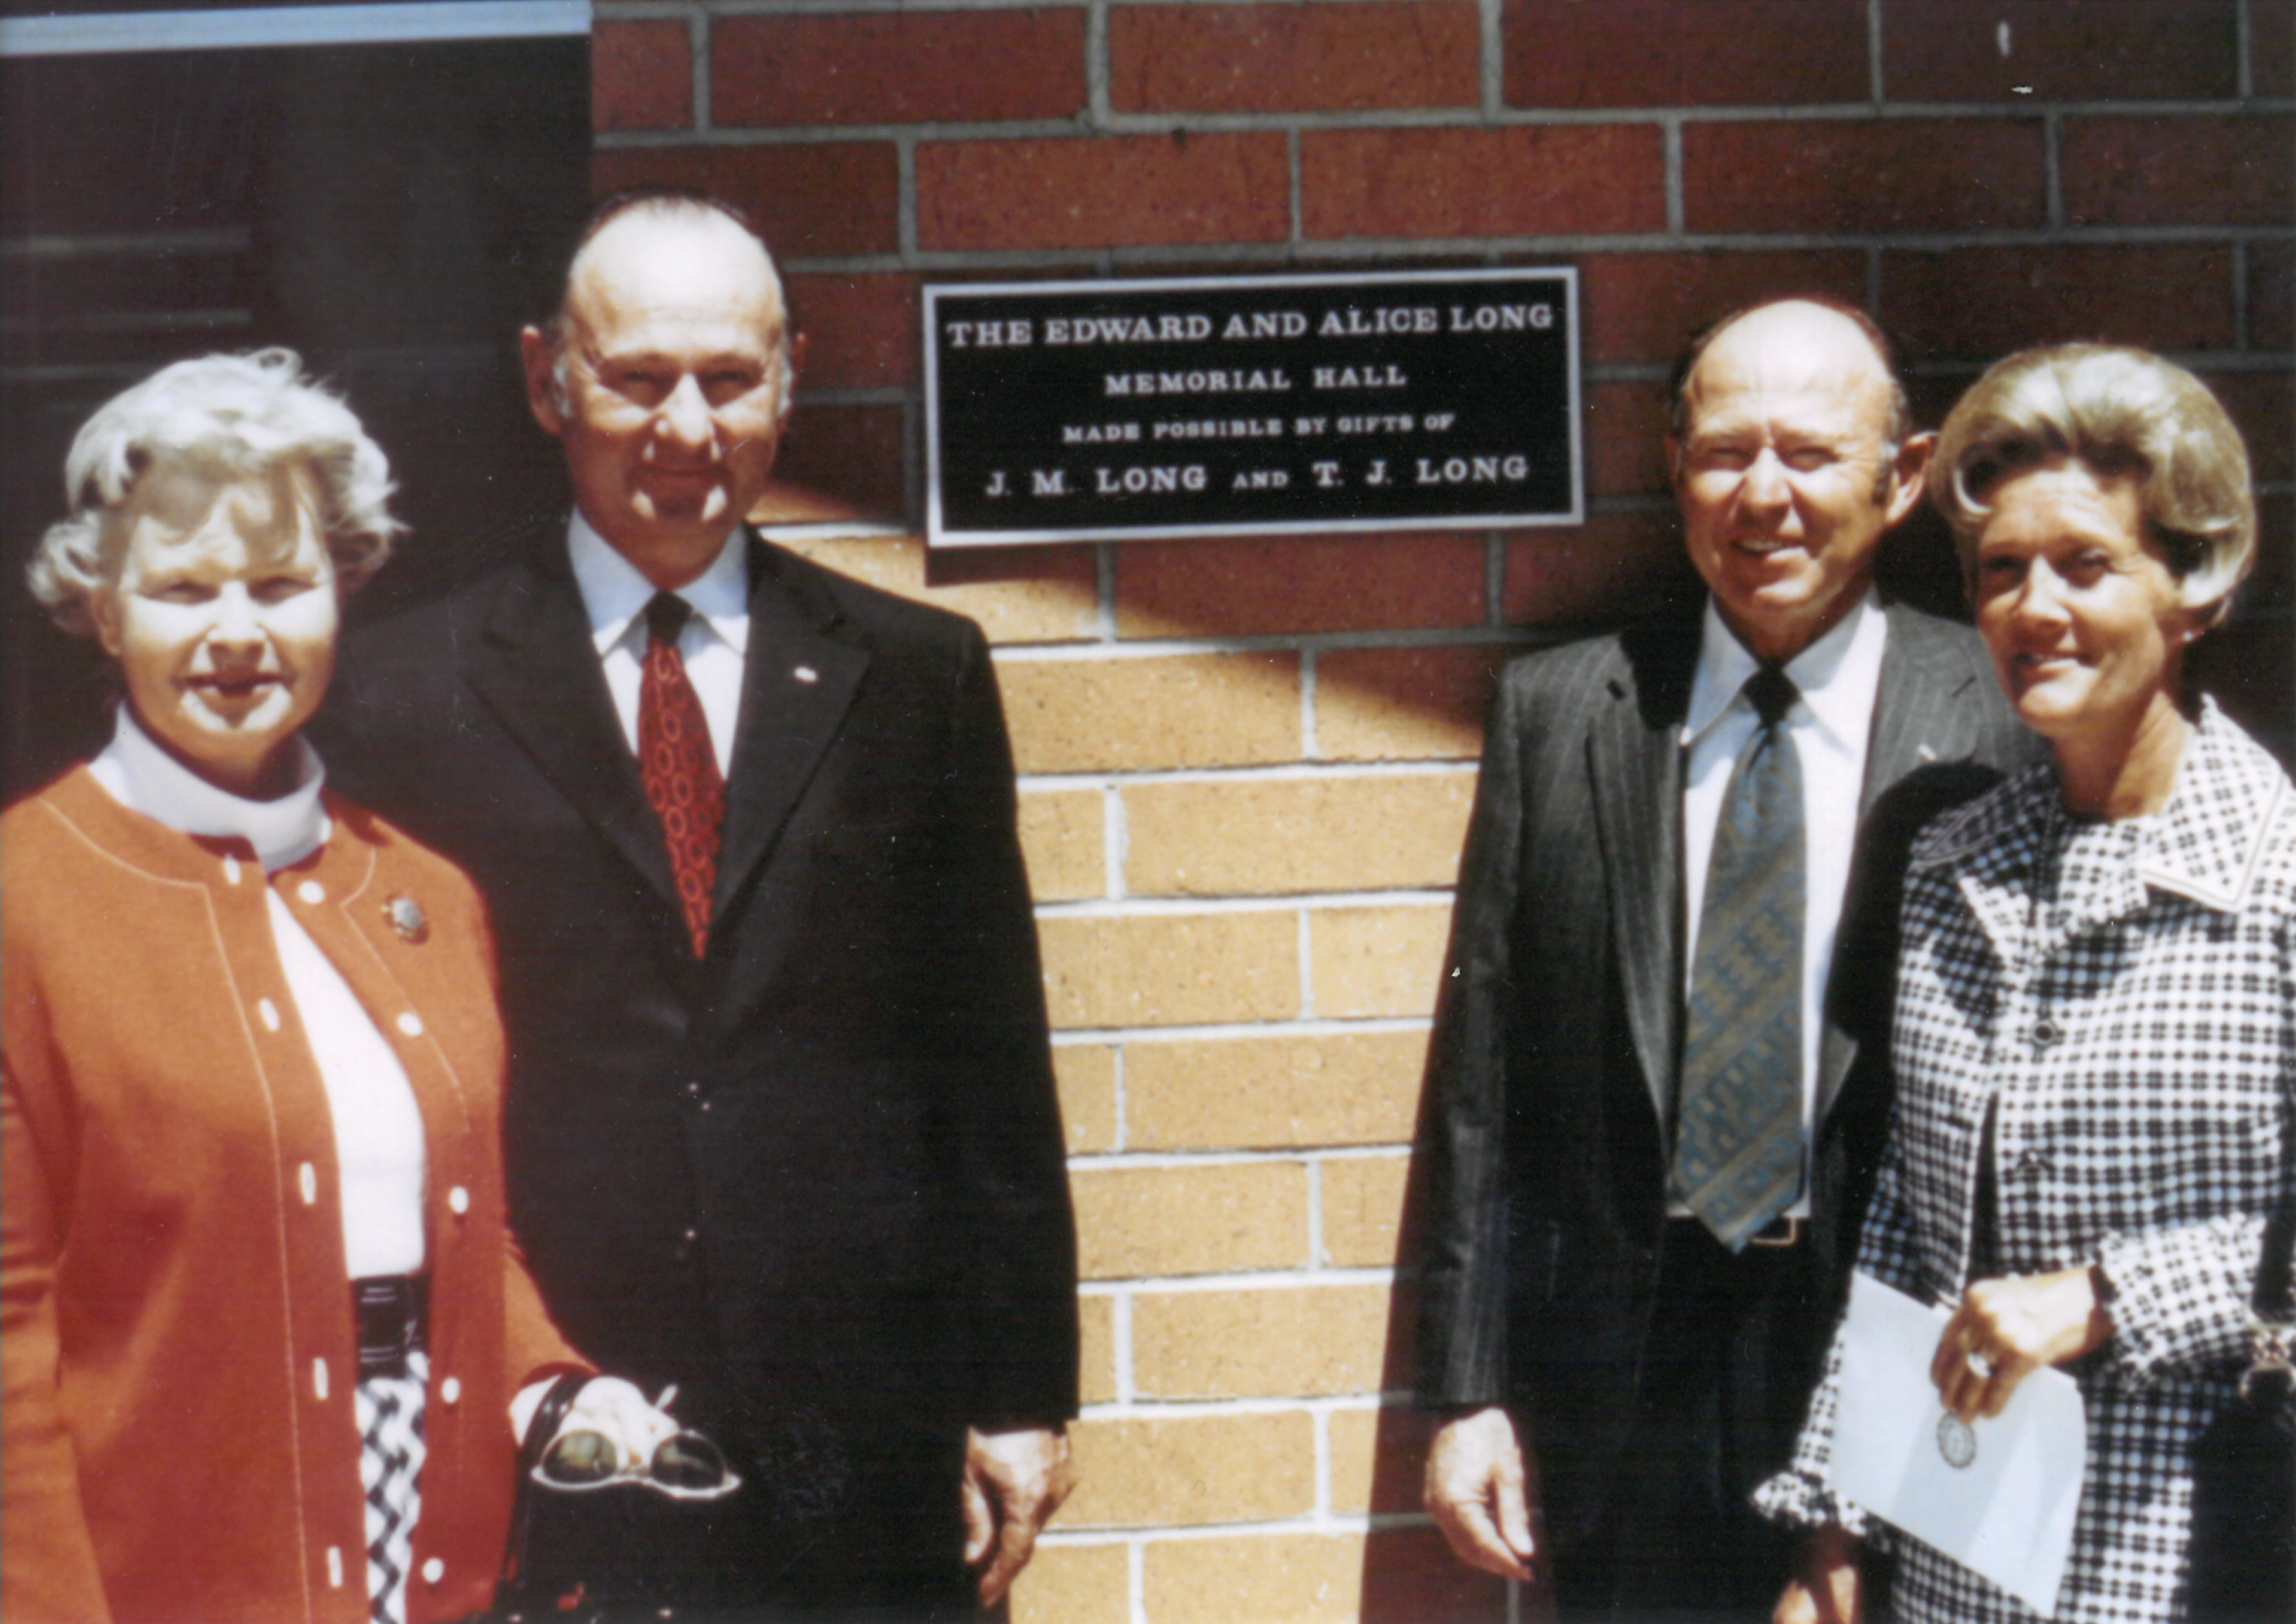 Long Hall Dedication